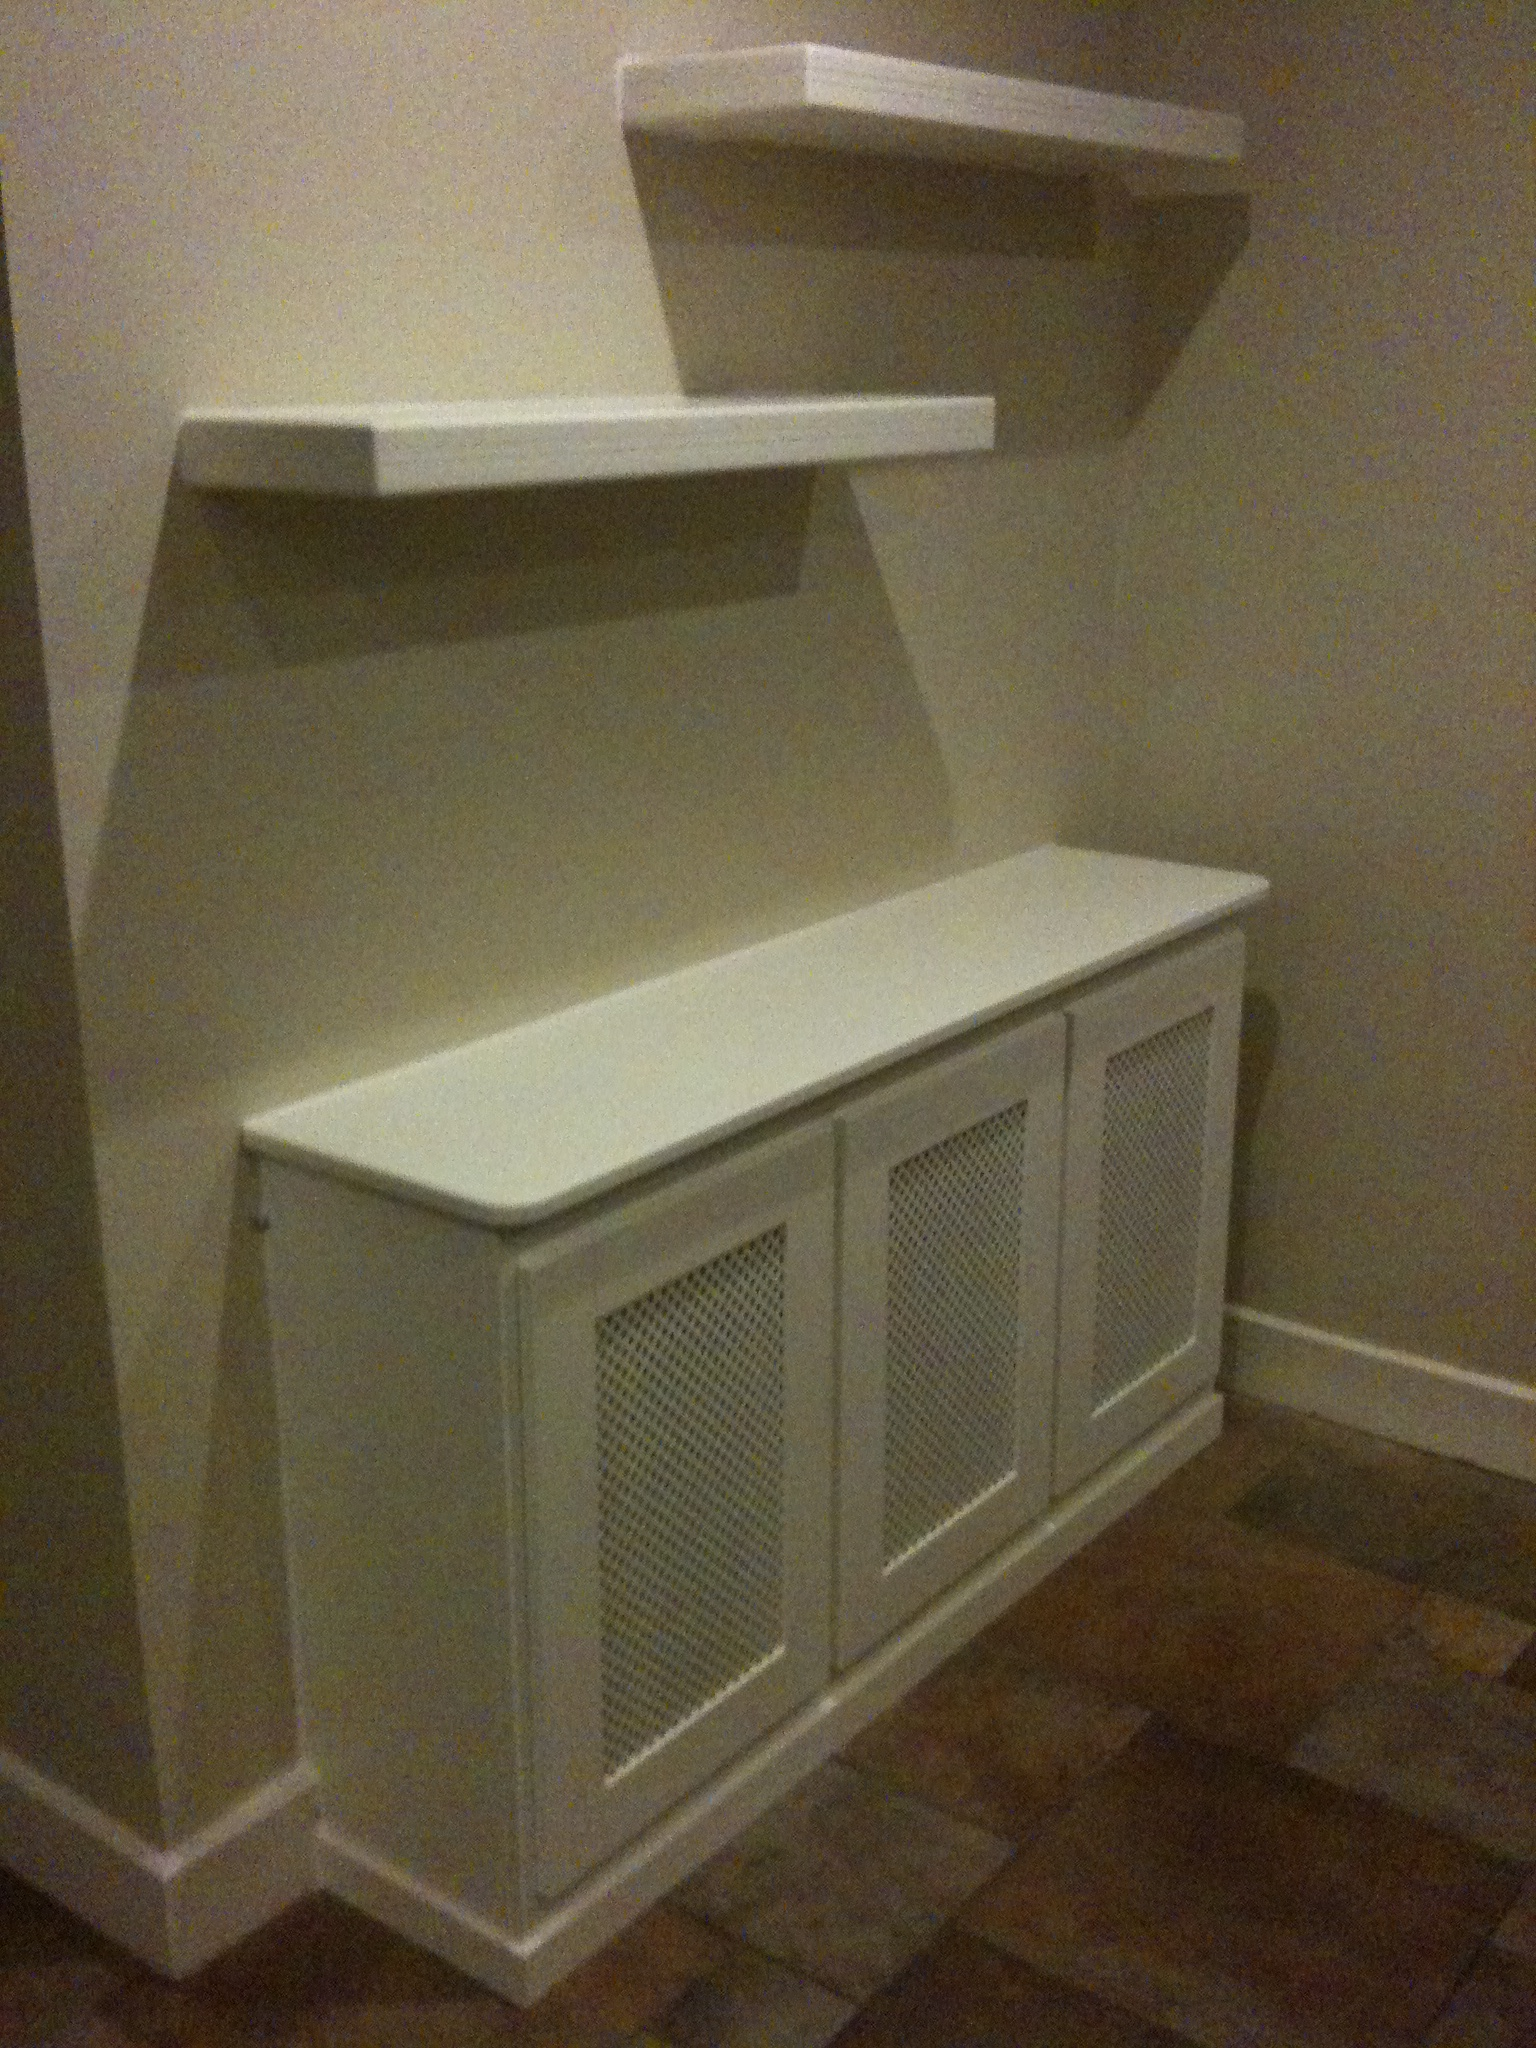 Radiator Cover With Doors To Front Also Floating Shelves Ivory Finish